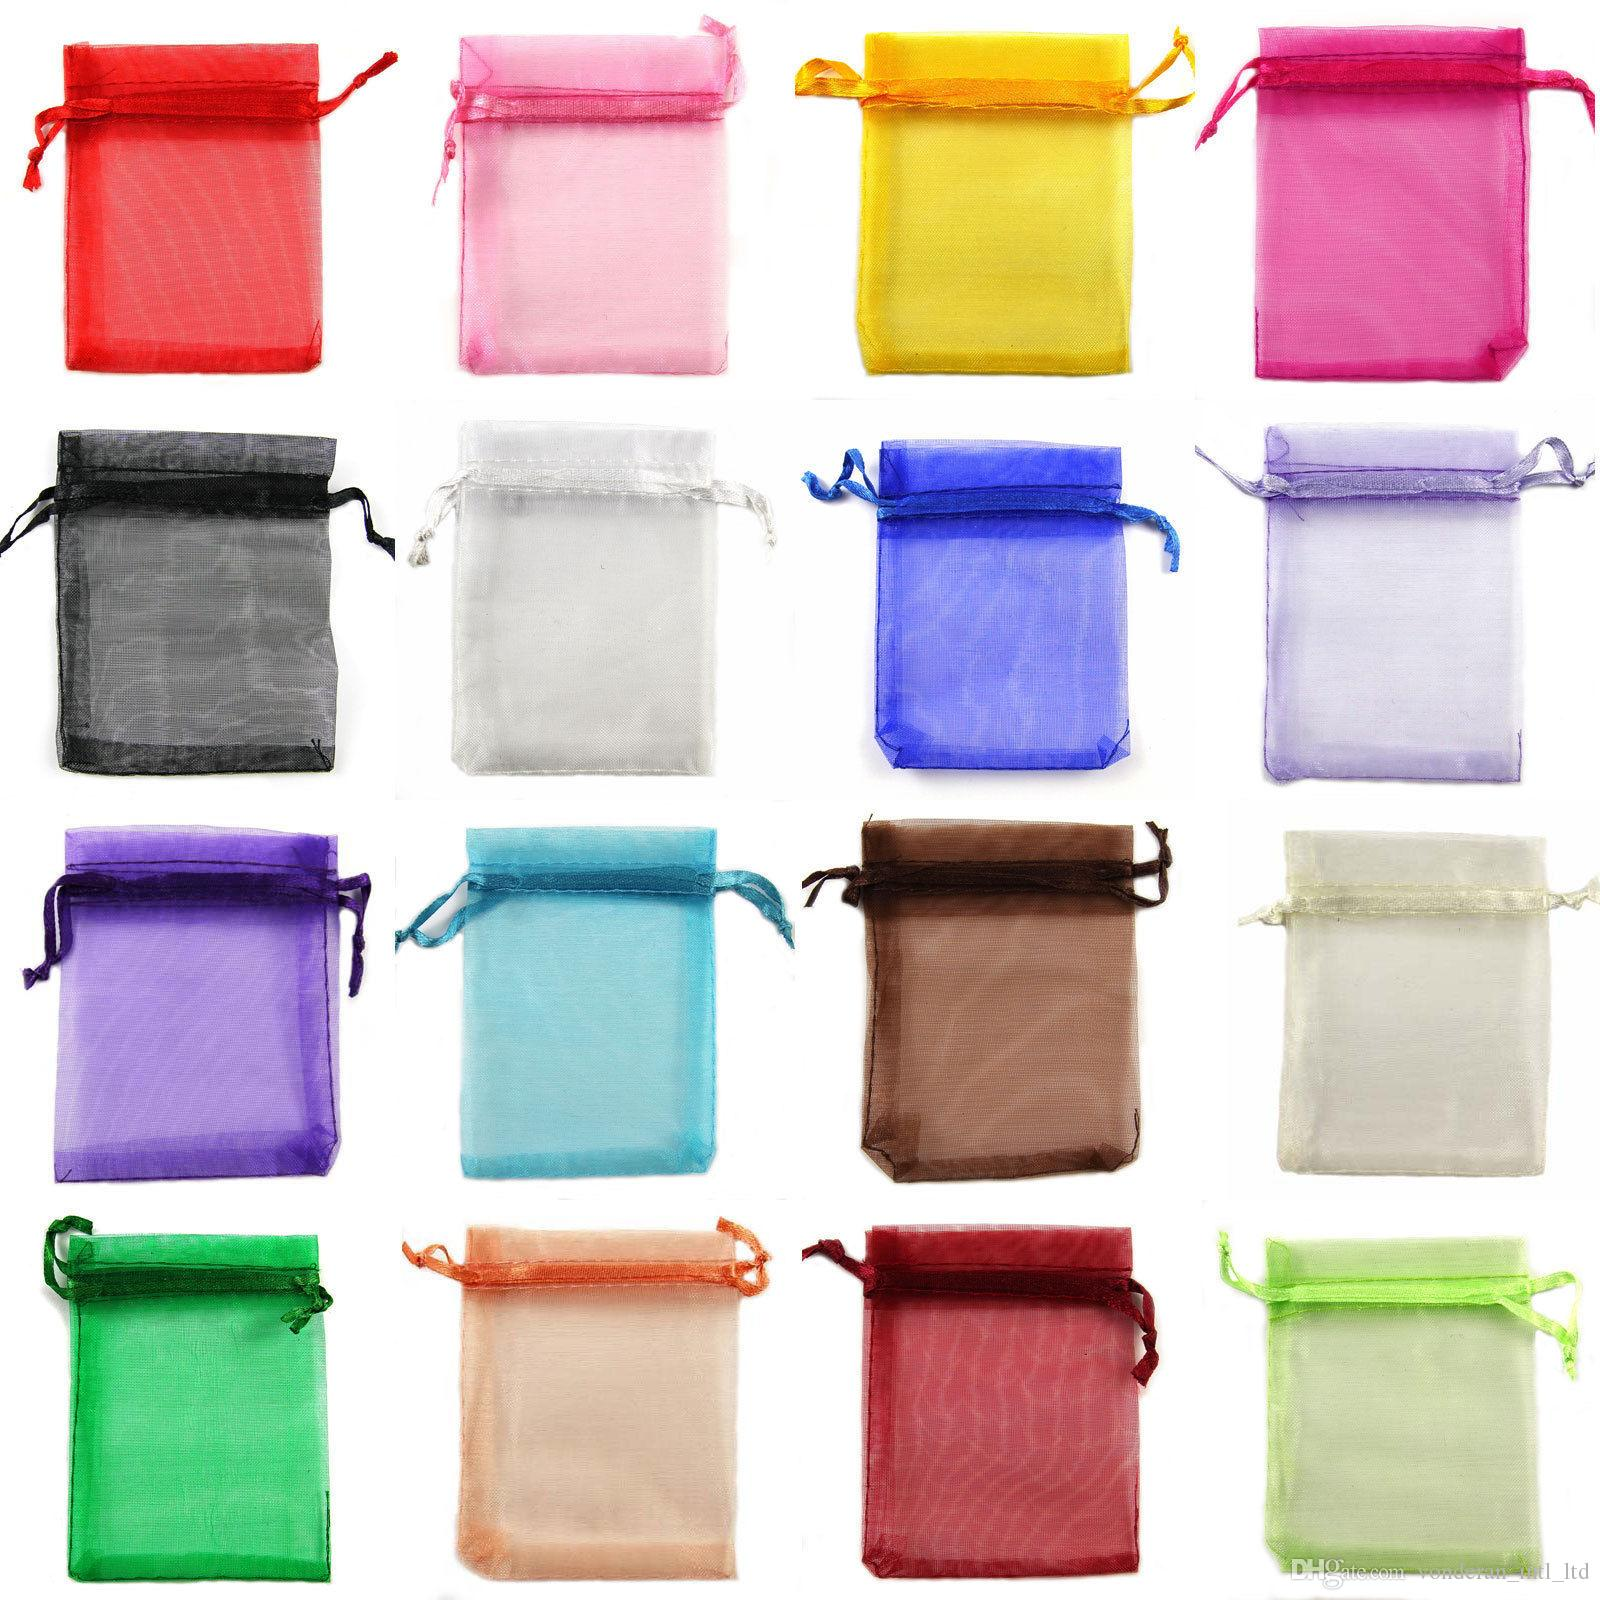 527ebaad5c6 5 7 7 9 9 12 13 18 15 20cm Drawstring Organza Bags Gift Wrapping Bag Gift  Pouch Jewelry Pouch Organza Bag Candy Bags Package Bag Mix Color Large Gift  Boxes ...